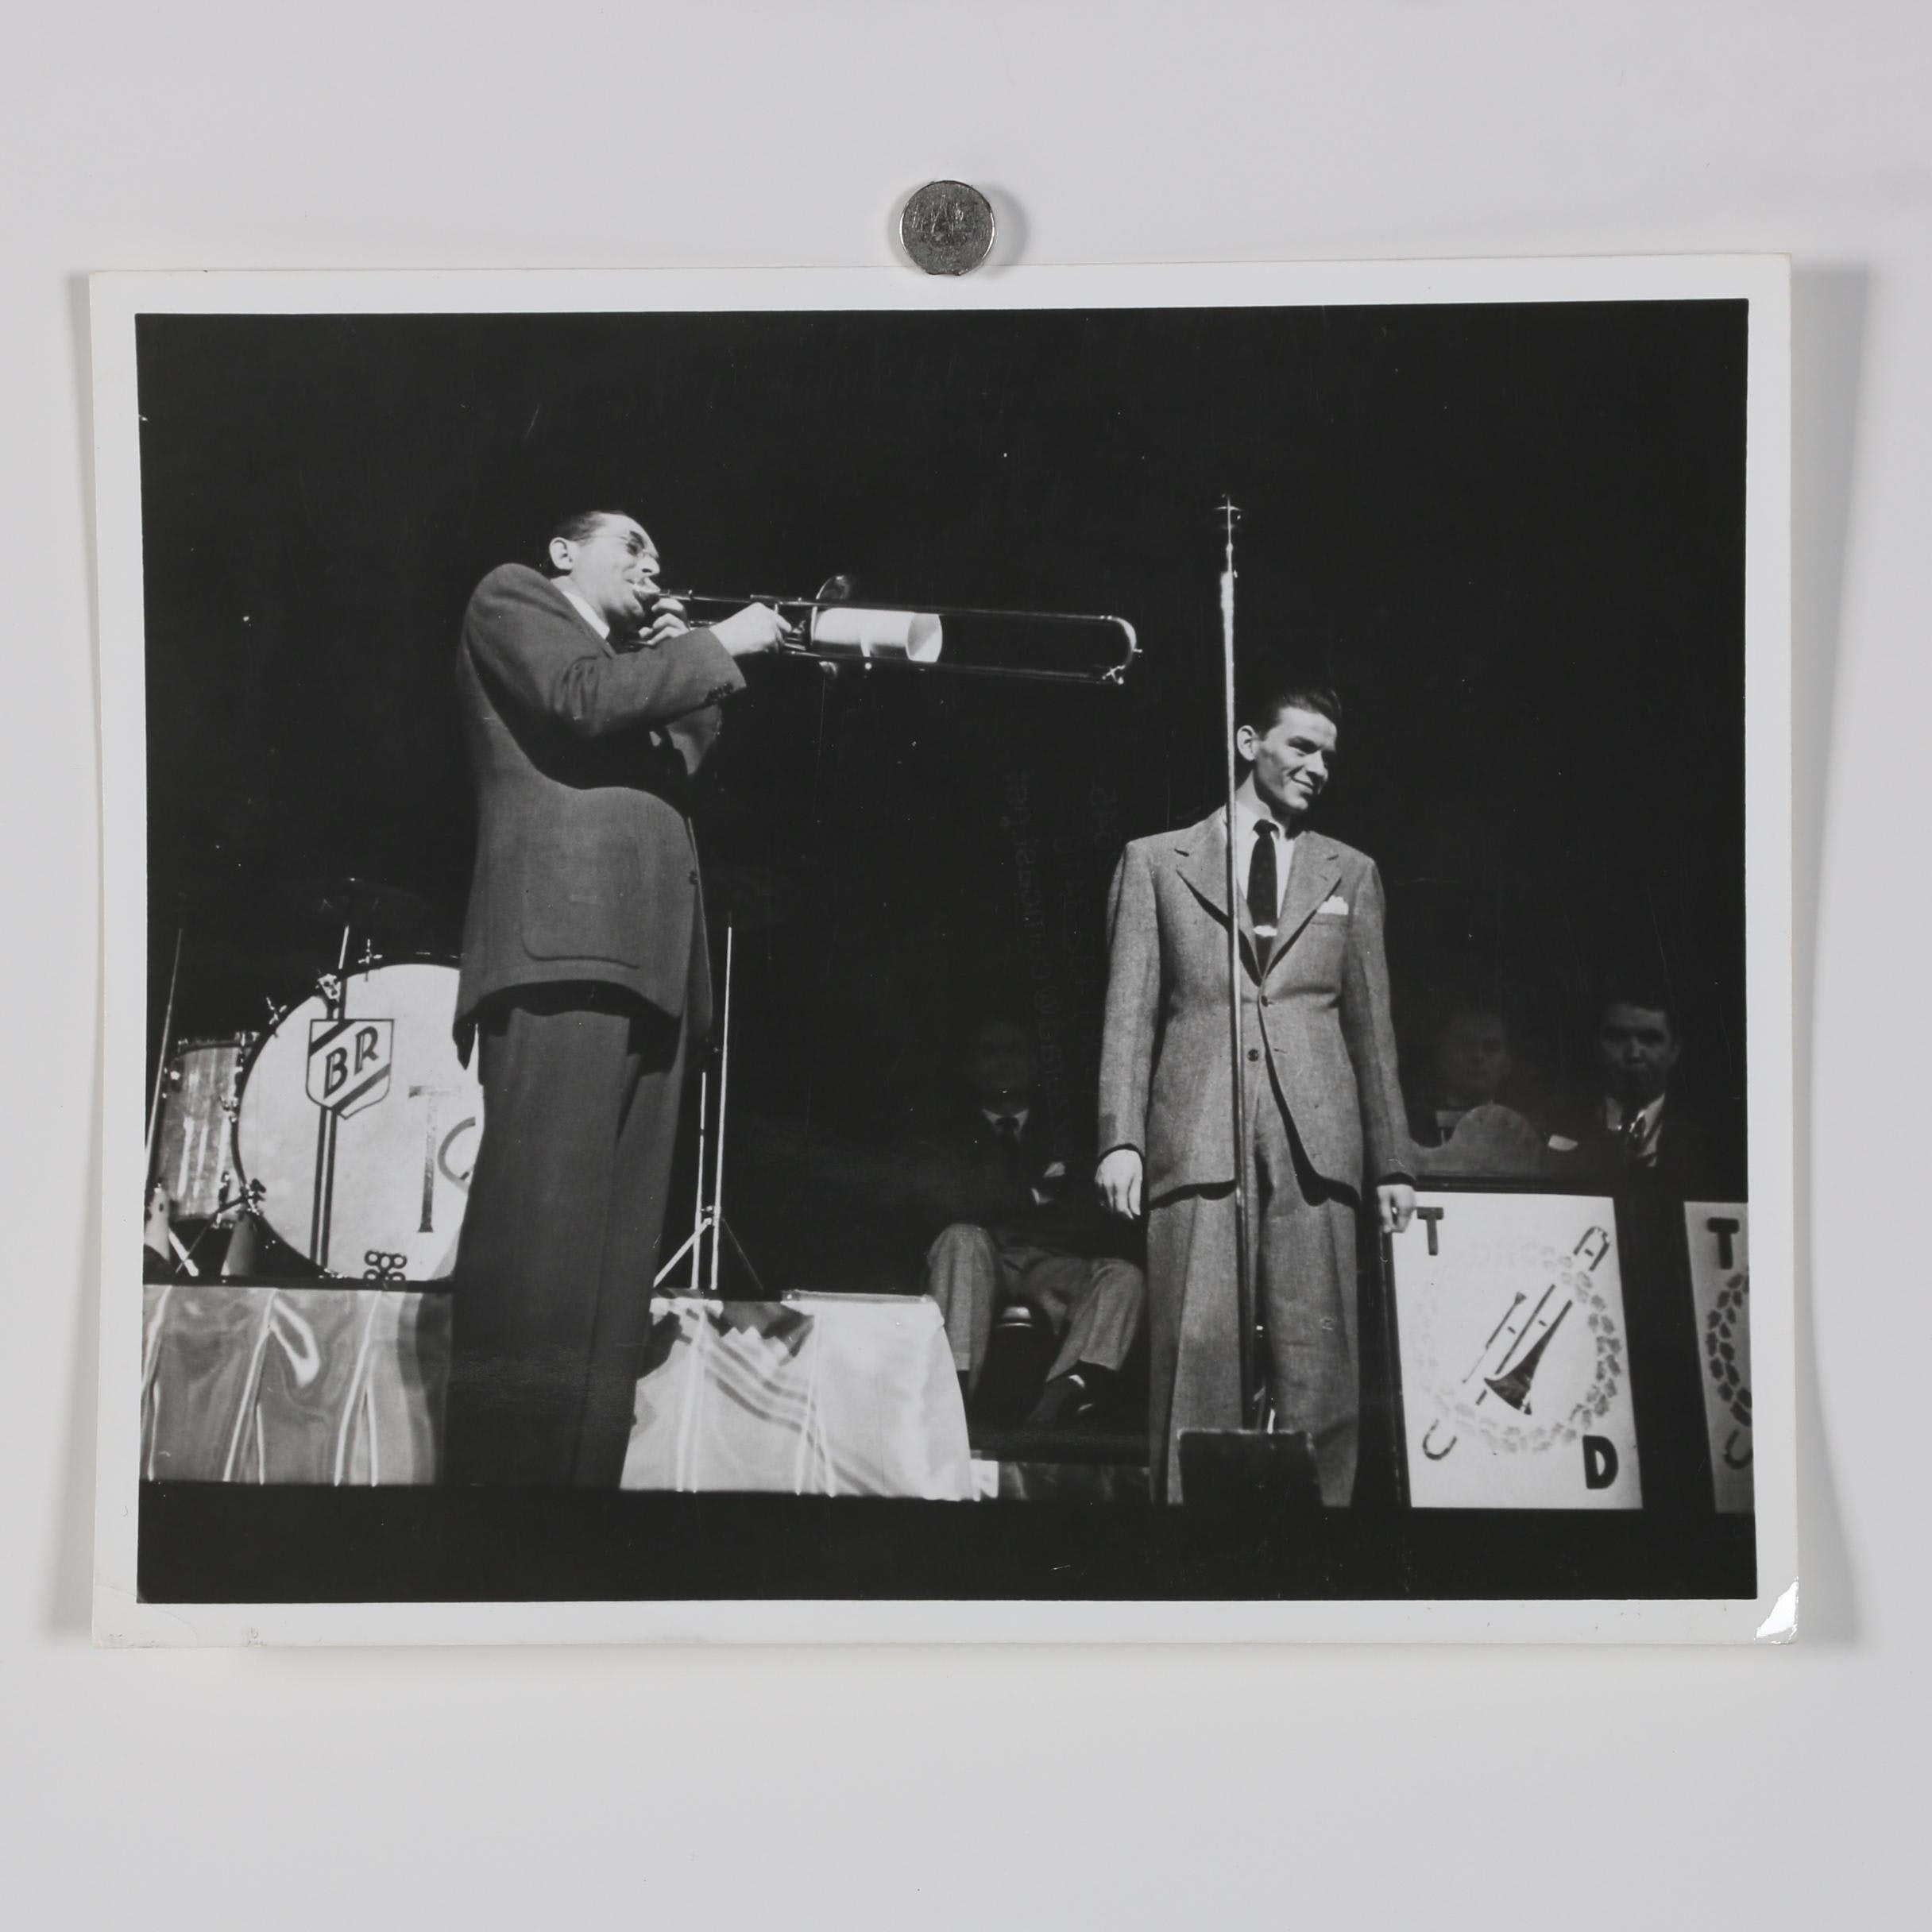 Jack Bradley Silver Gelatin Photograph of Tommy Dorsey with Frank Sinatra